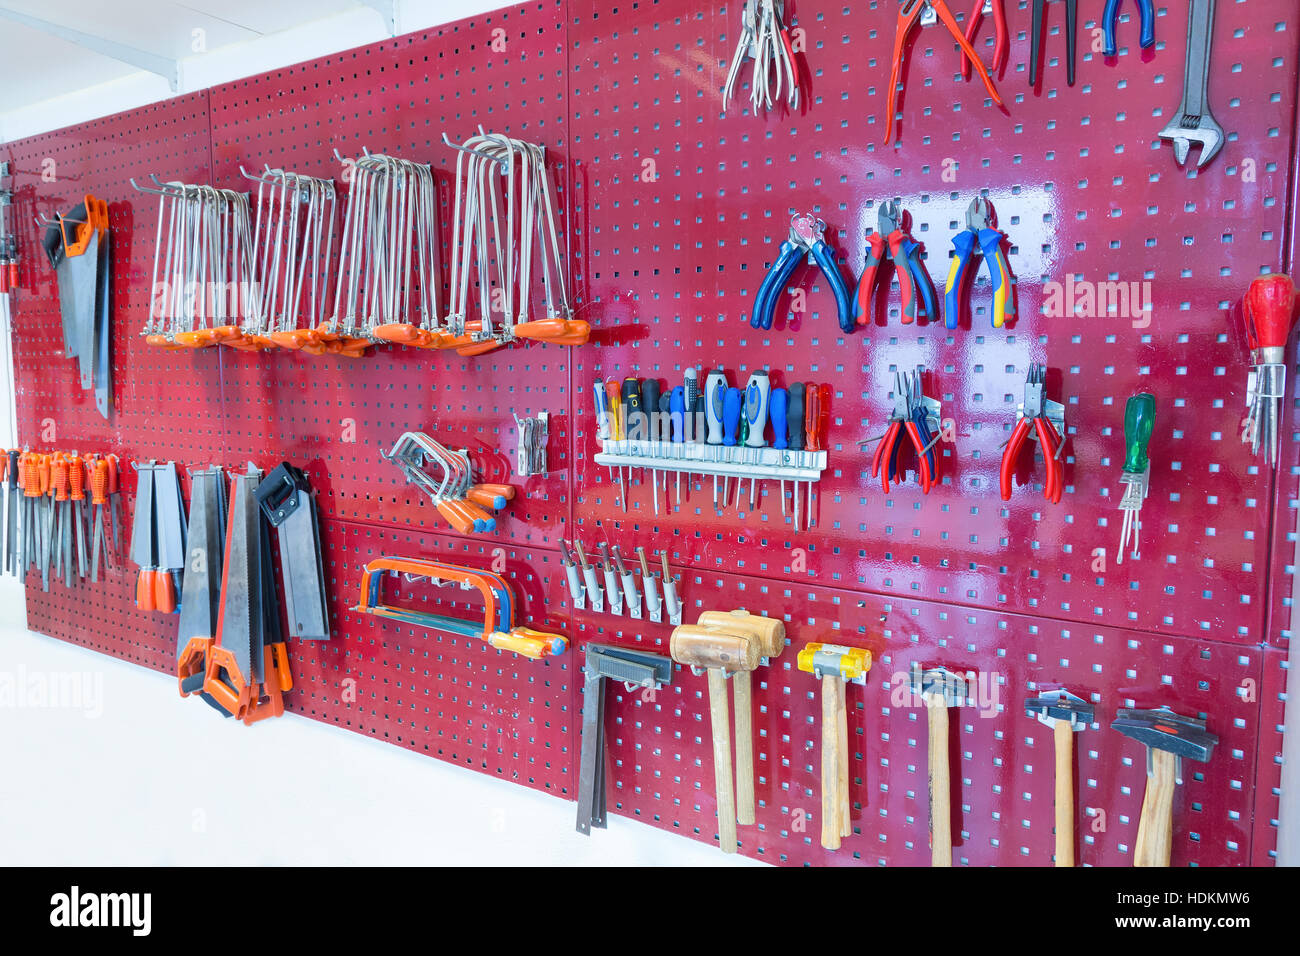 Many tools hanging at pegboard in classroom of school - Stock Image